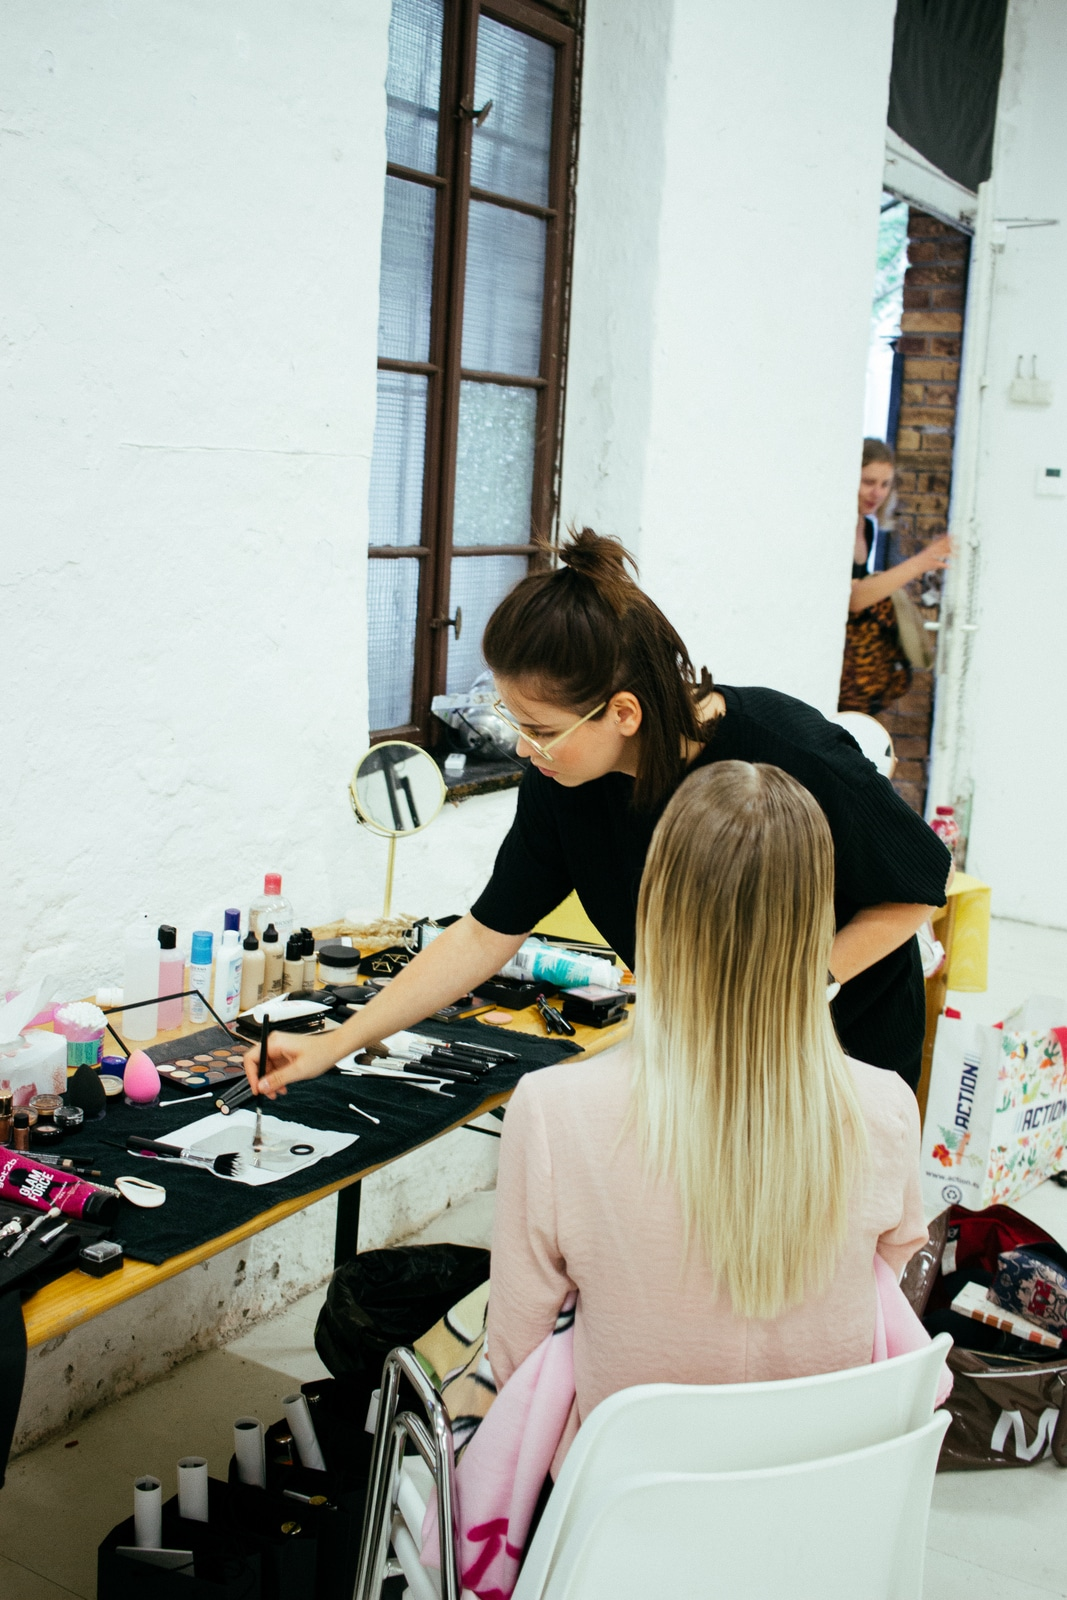 Stylistin und Visagistin Julia Neumeister backstage fashionshow Mac Cosmetics